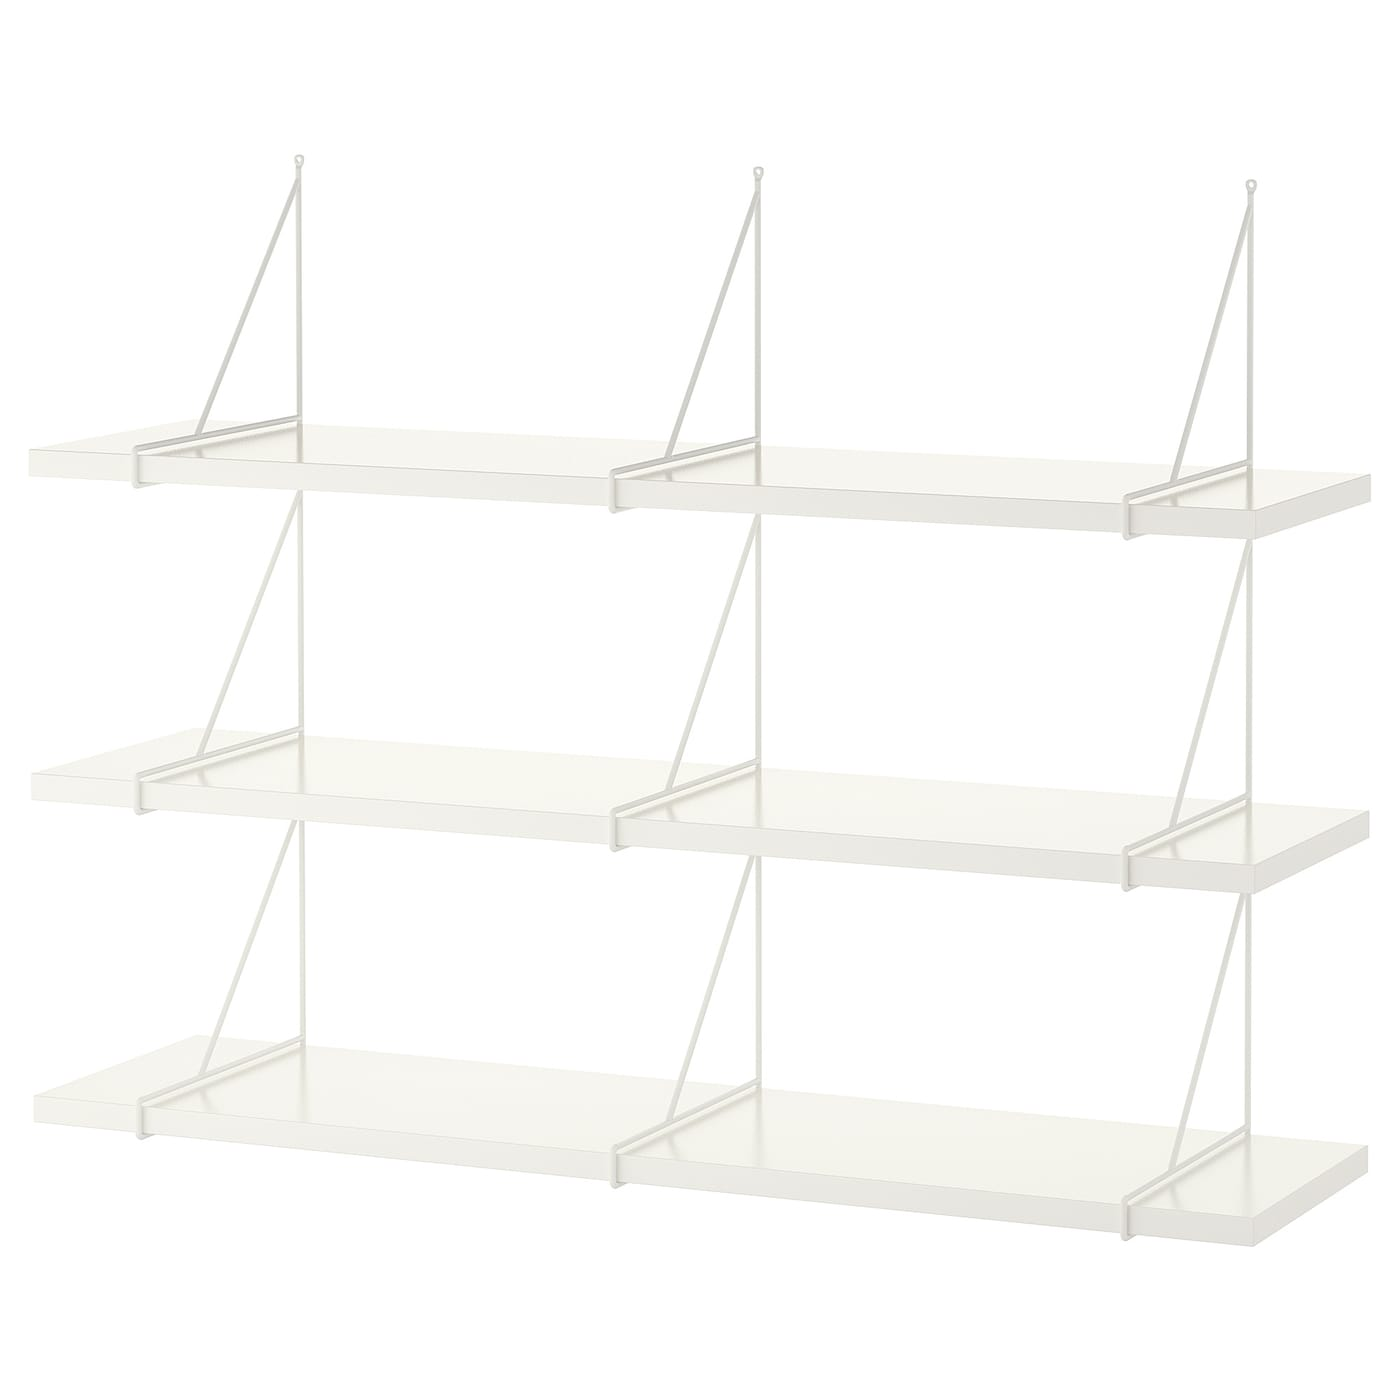 IKEA PERSHULT/BERGSHULT wall shelf combination